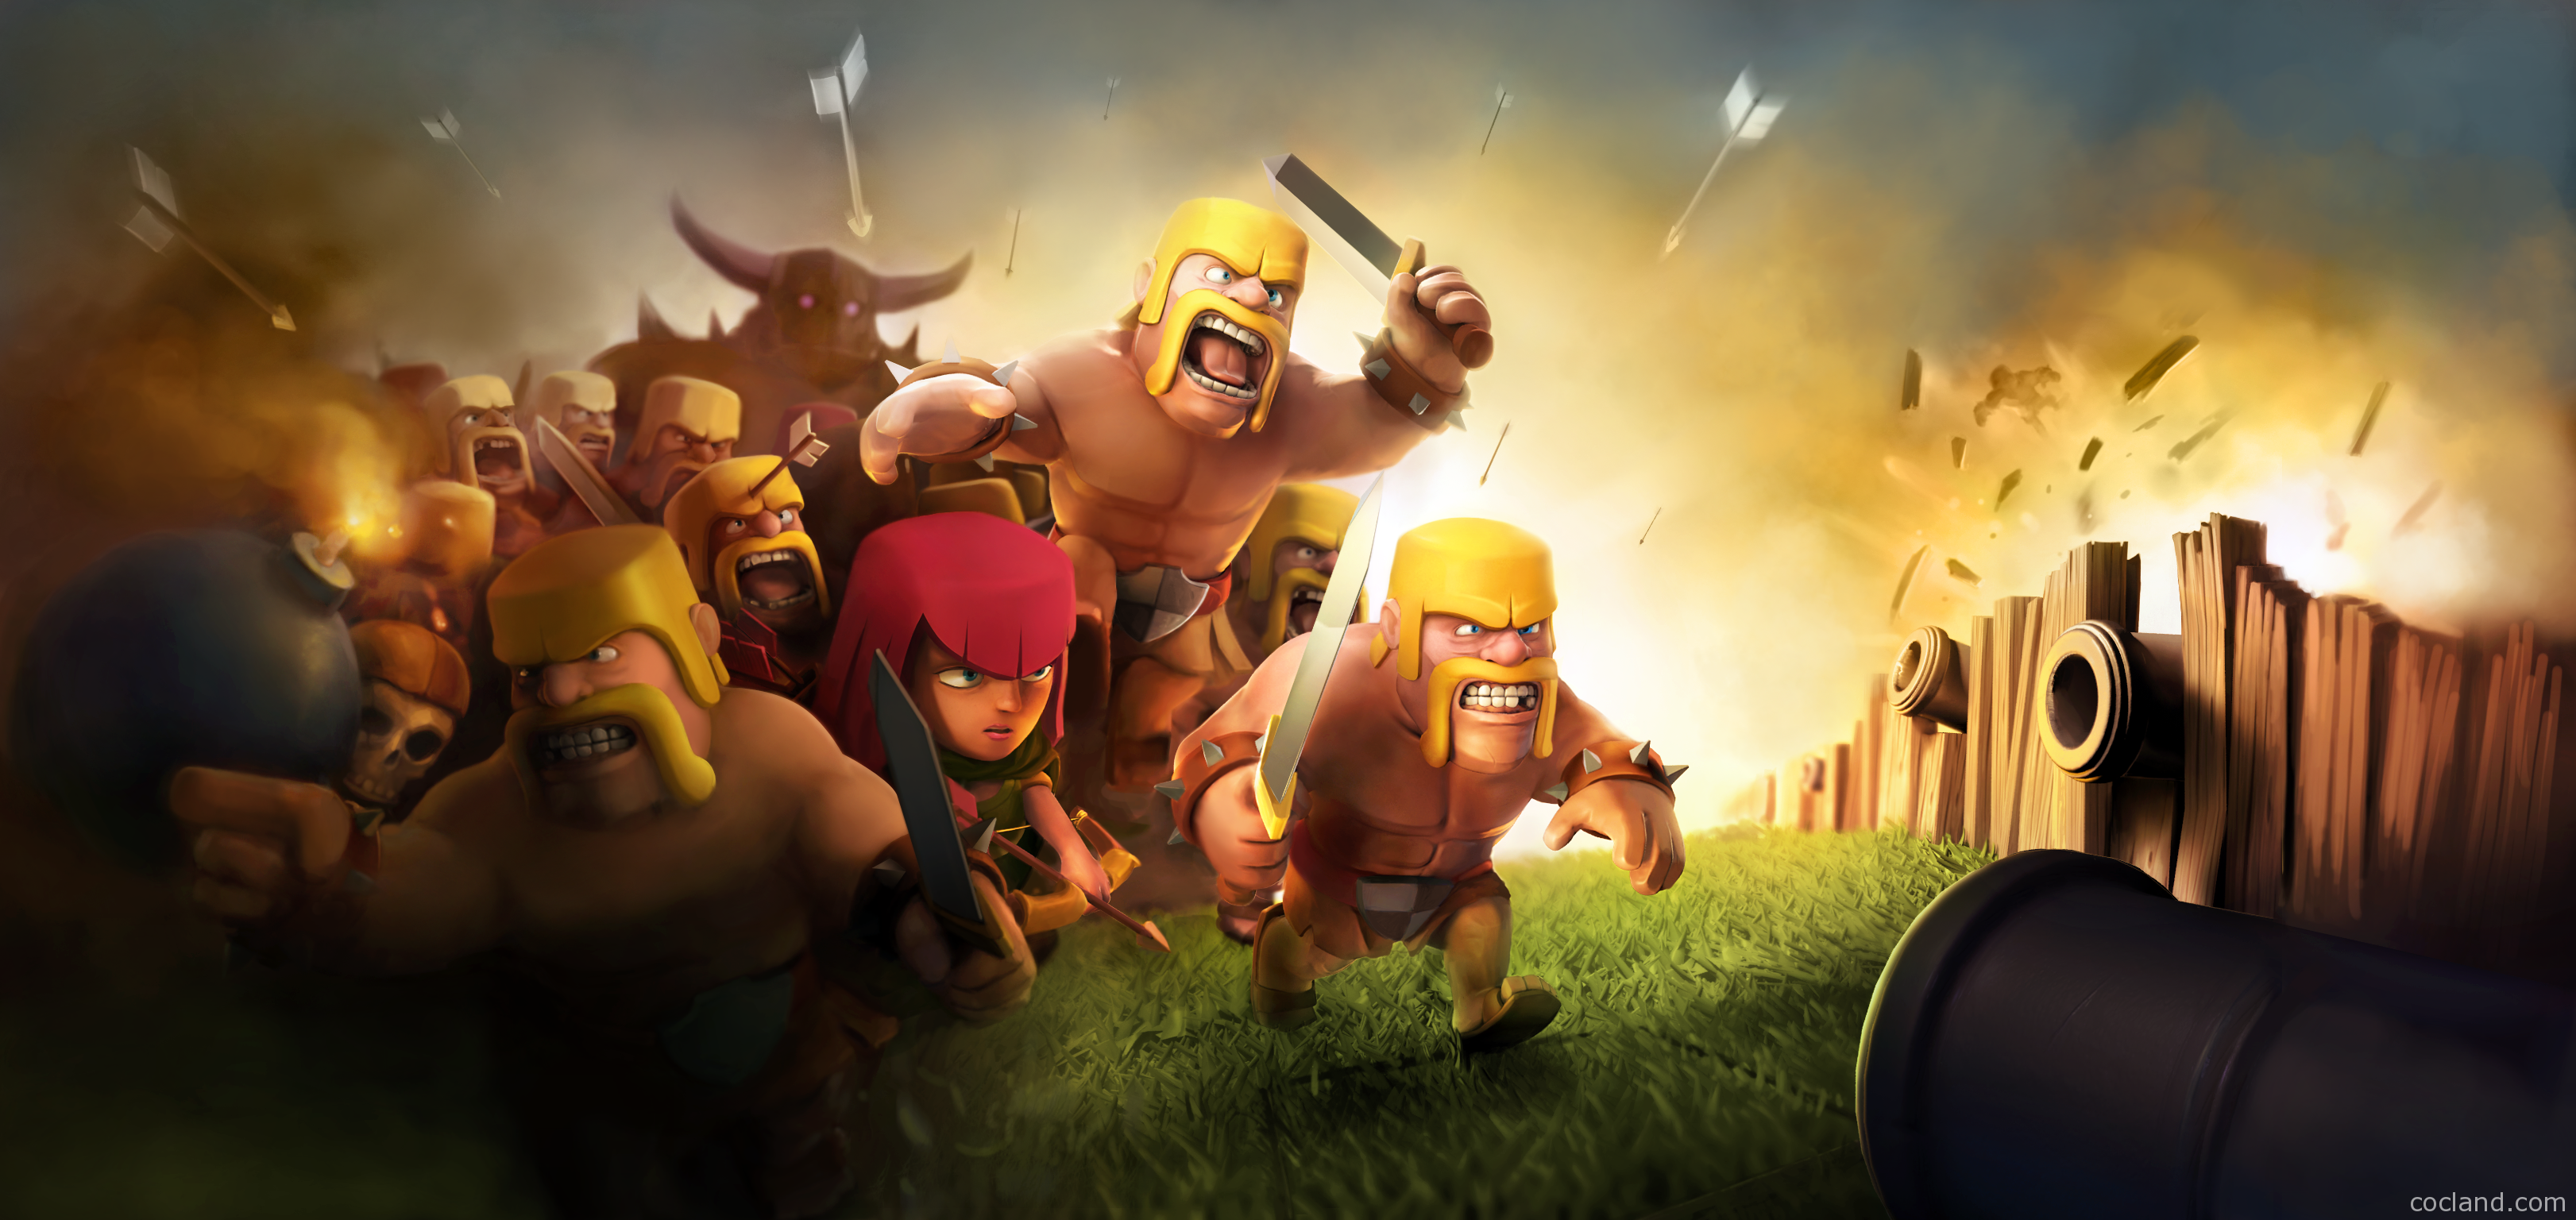 Clash Of Clans Wallpapers Images Photos Pictures Backgrounds 3243x1536